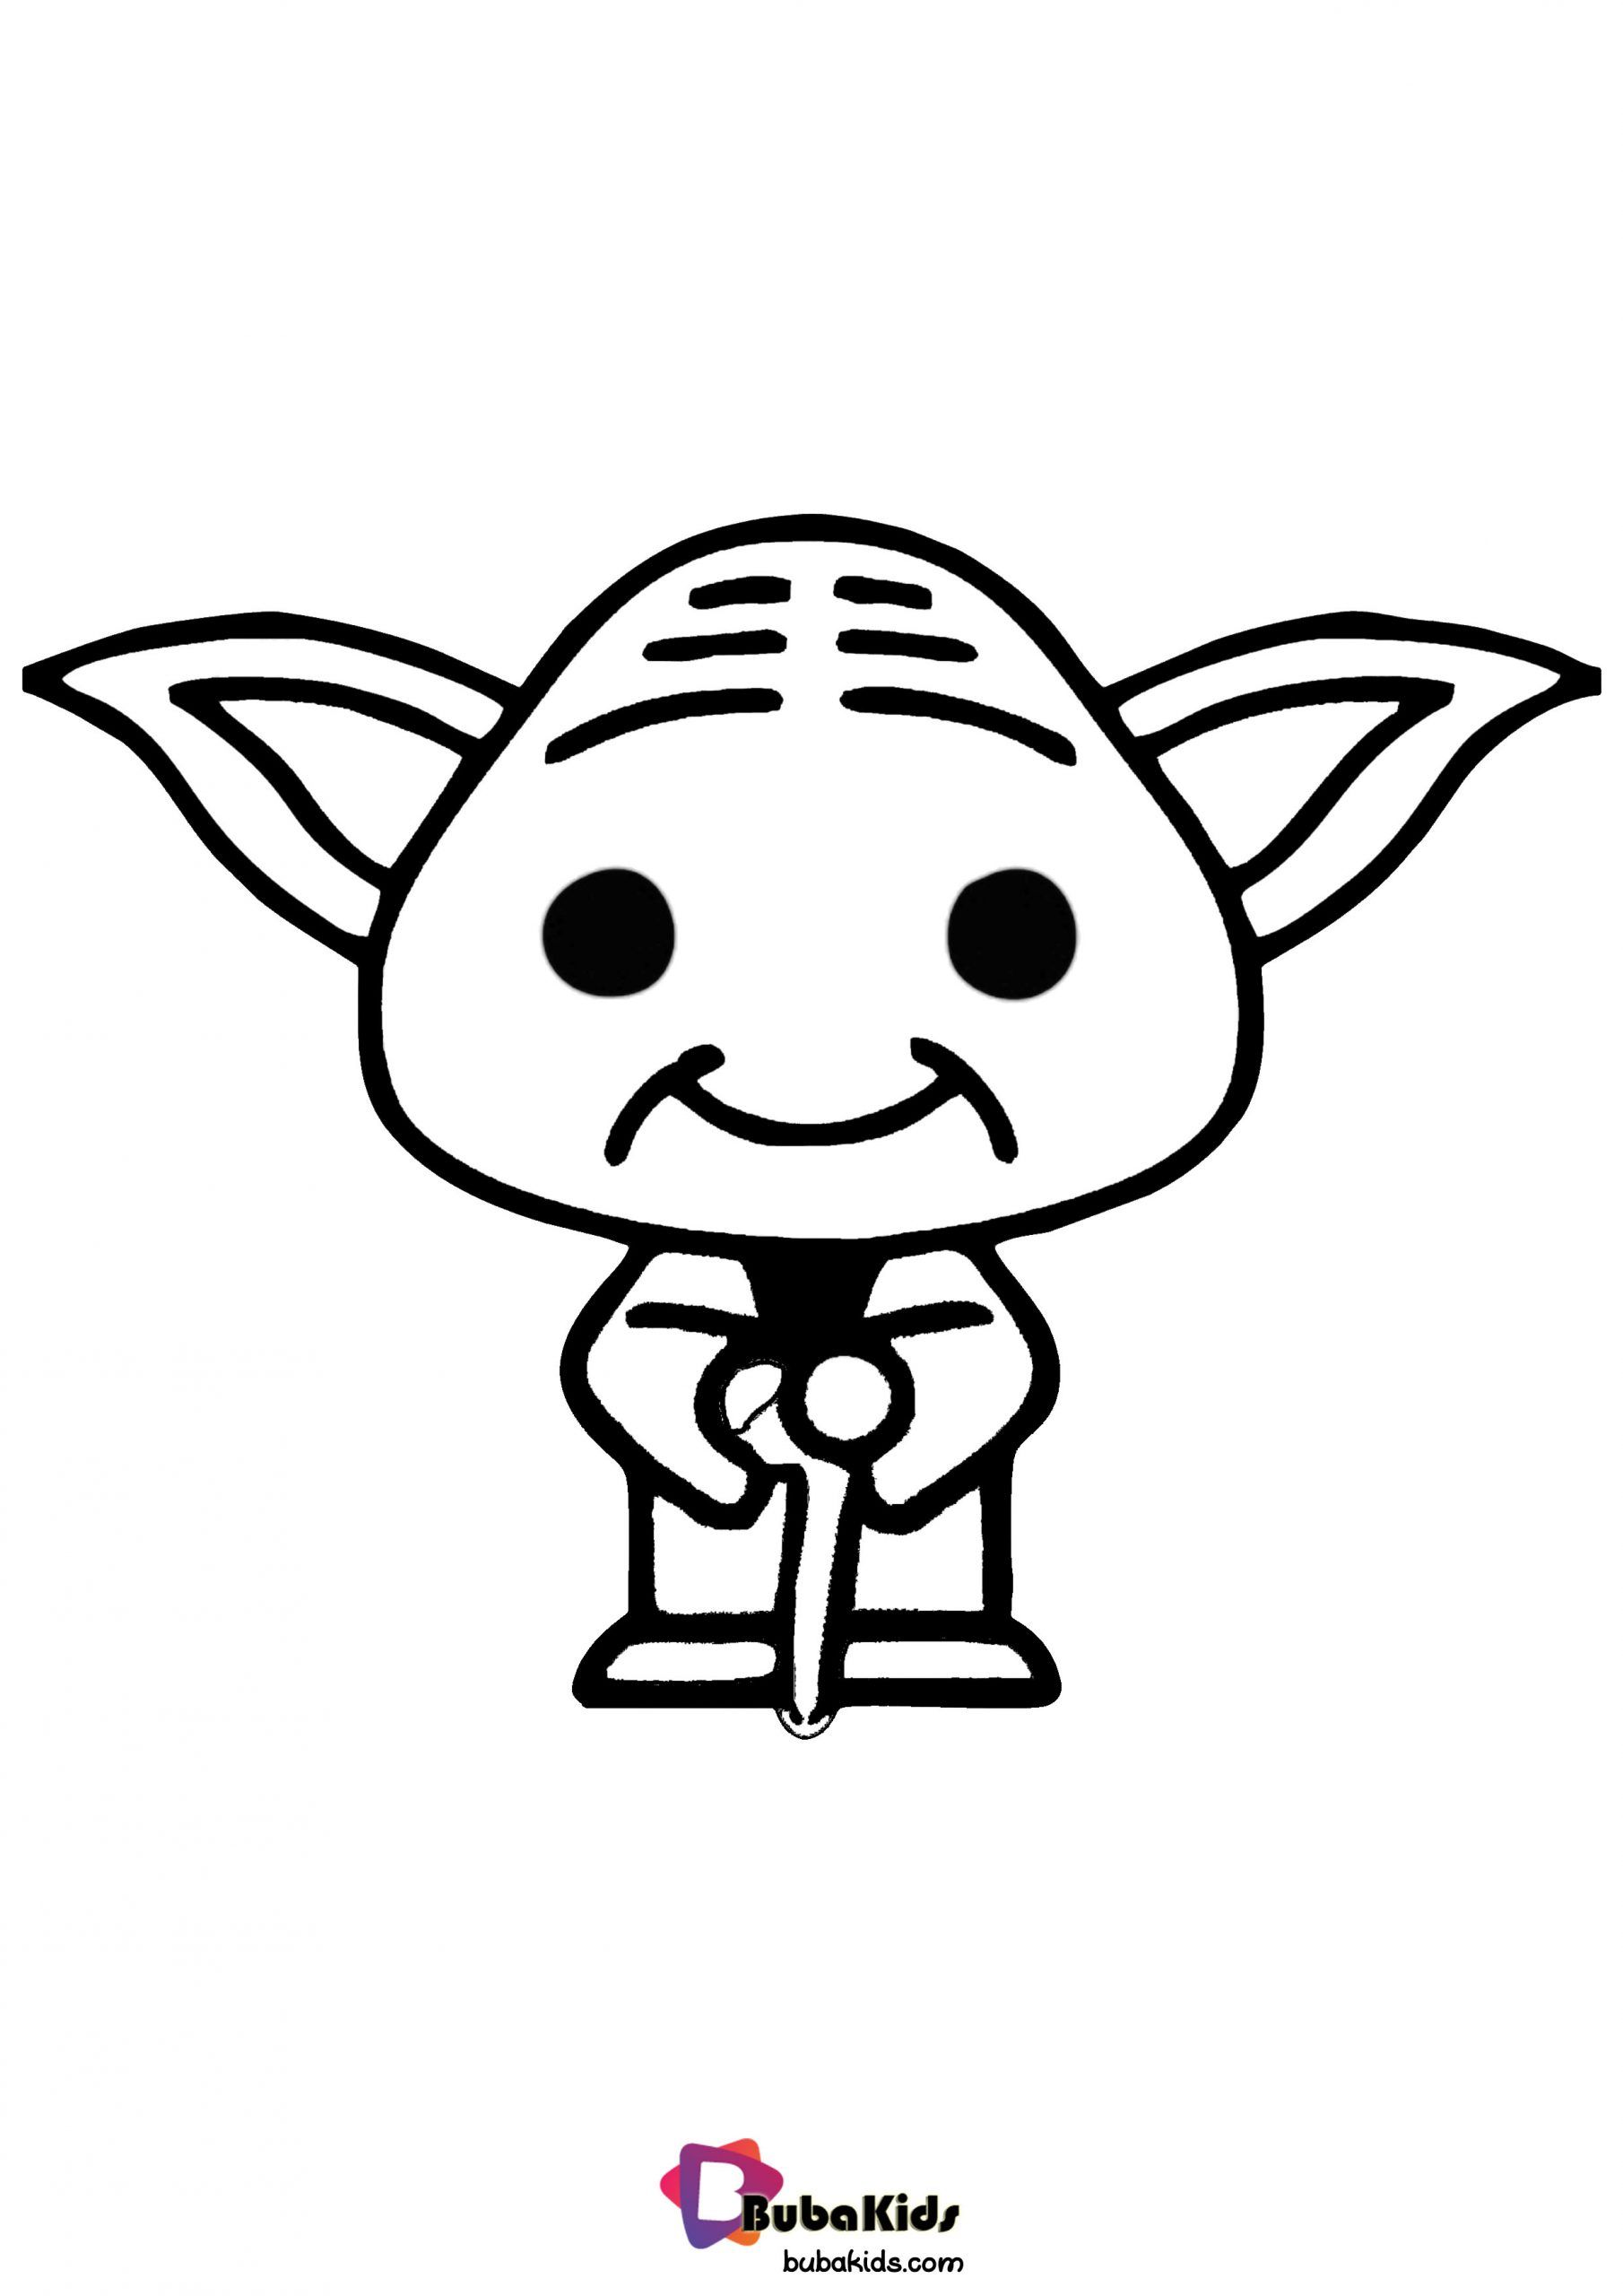 Baby Yoda Coloring Page Cartoon coloring pages, Coloring